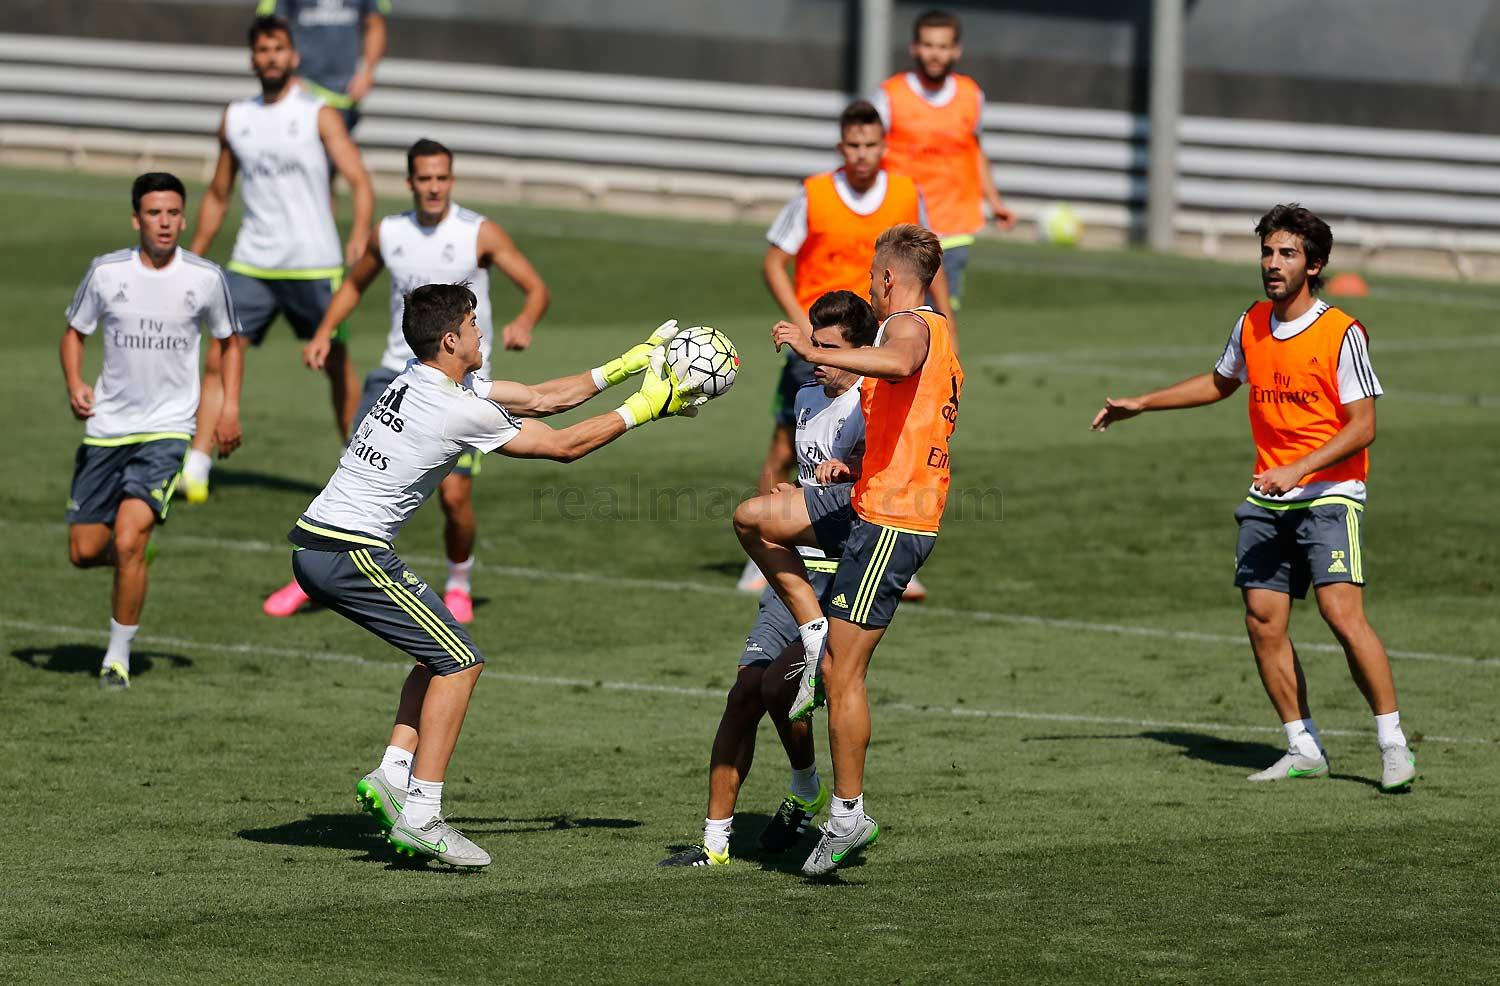 Real Madrid - Entrenamiento del Real Madrid - 03-09-2015